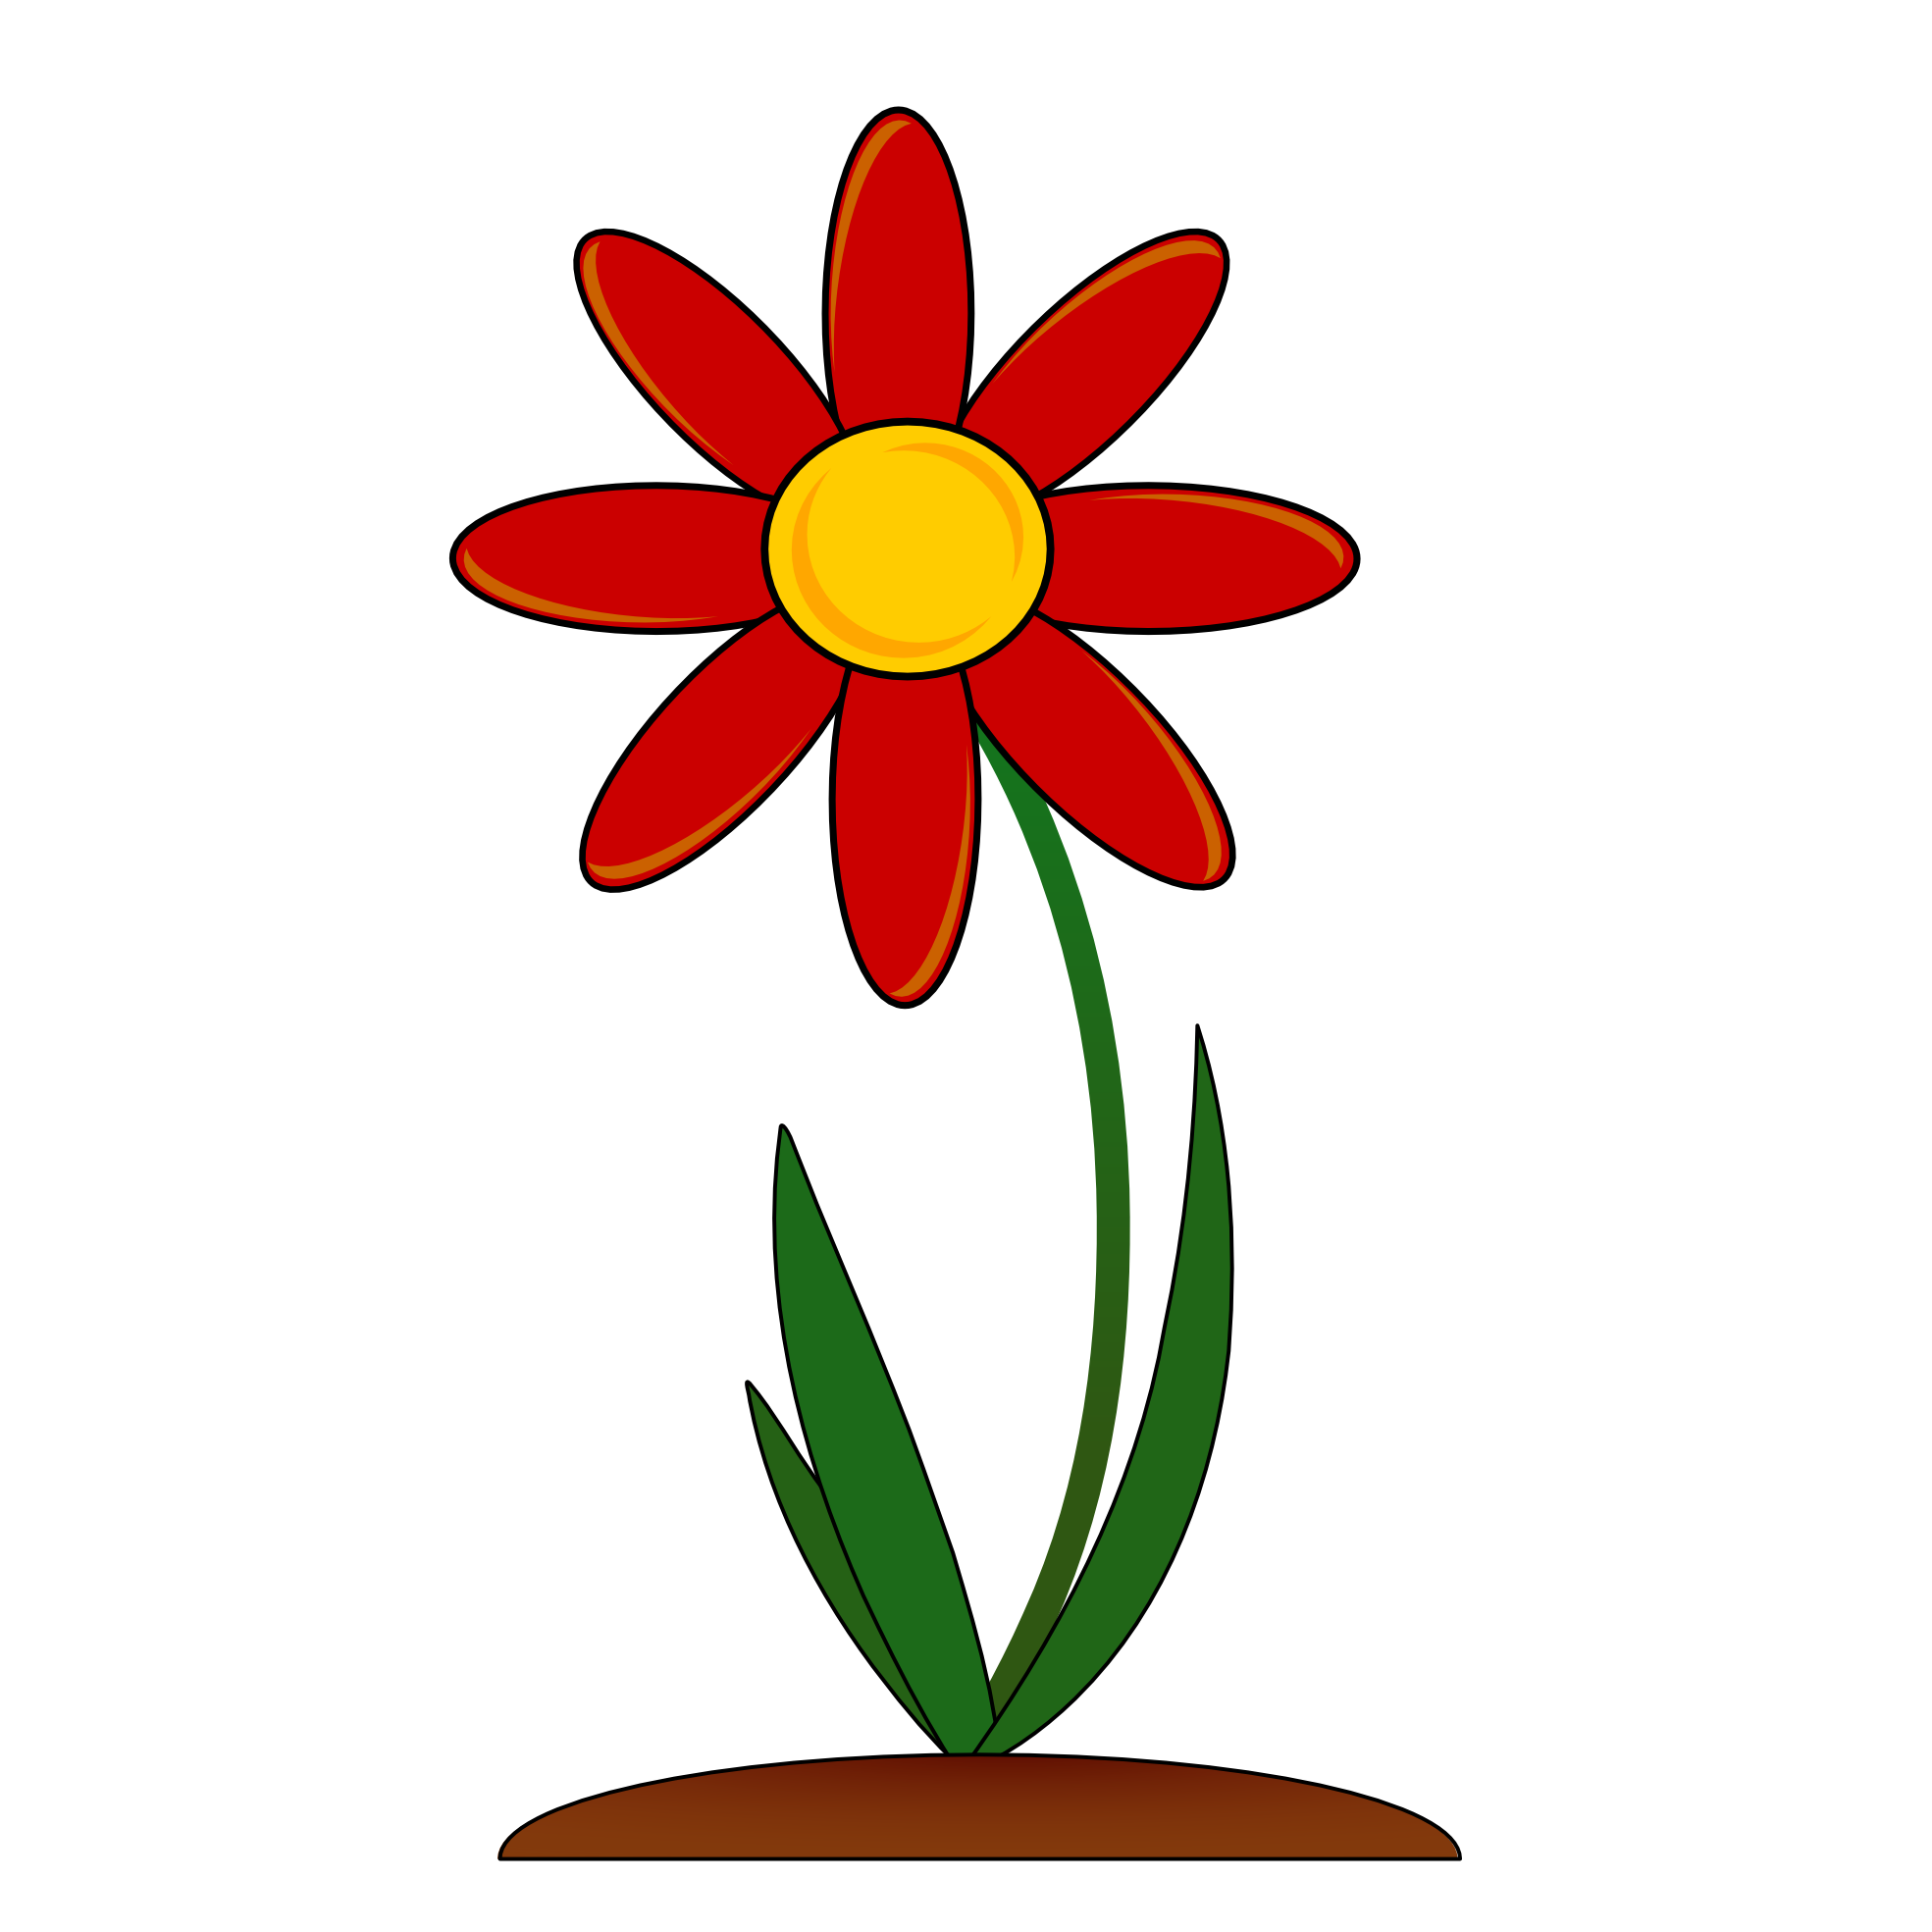 Growing flowers clipart image royalty free library Growing flower clipart clipart images gallery for free download ... image royalty free library